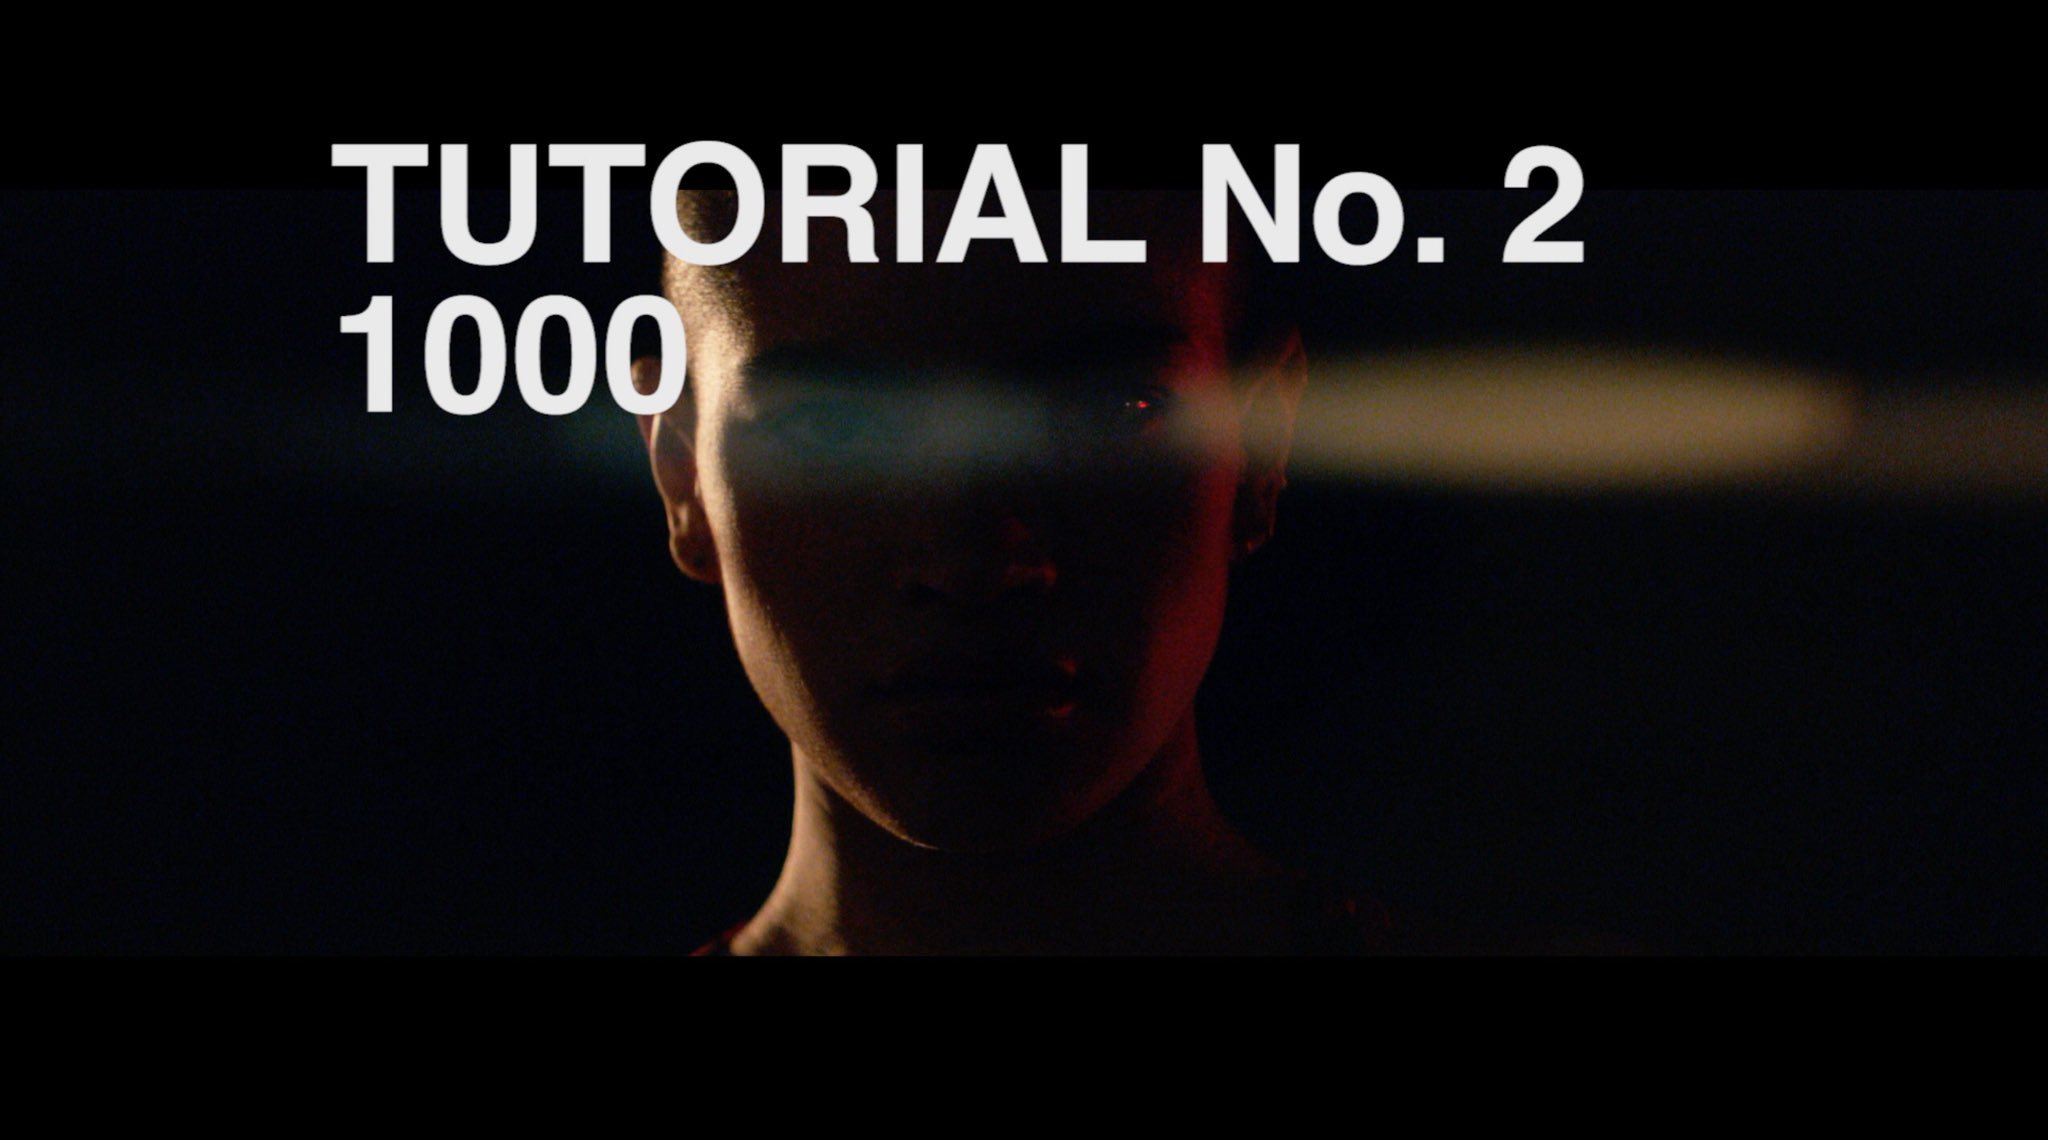 Watch @nerdarmy's Tutorial No. 2 1000. #NOONEEVERREALLYDIES https://t.co/GJLD1xmTG1 https://t.co/ayrFjVkWQz